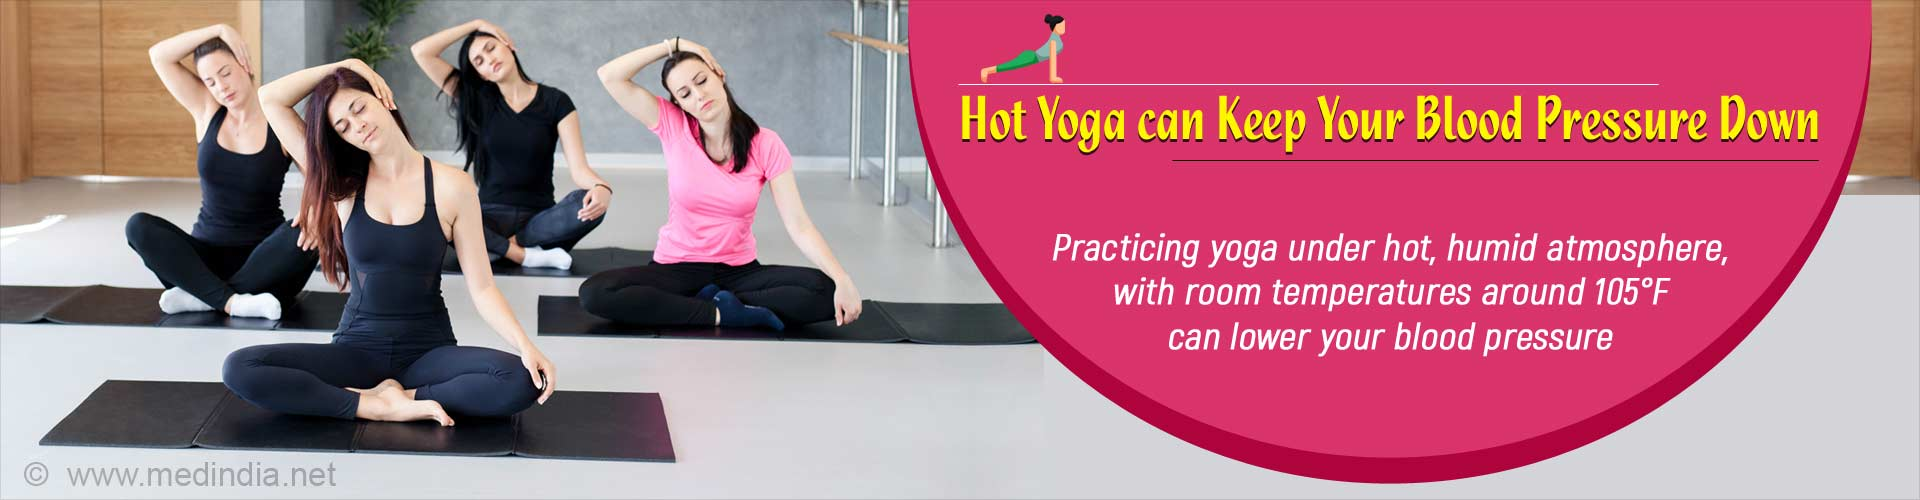 Sizzling Hot Yoga can Lower Your Blood Pressure Naturally